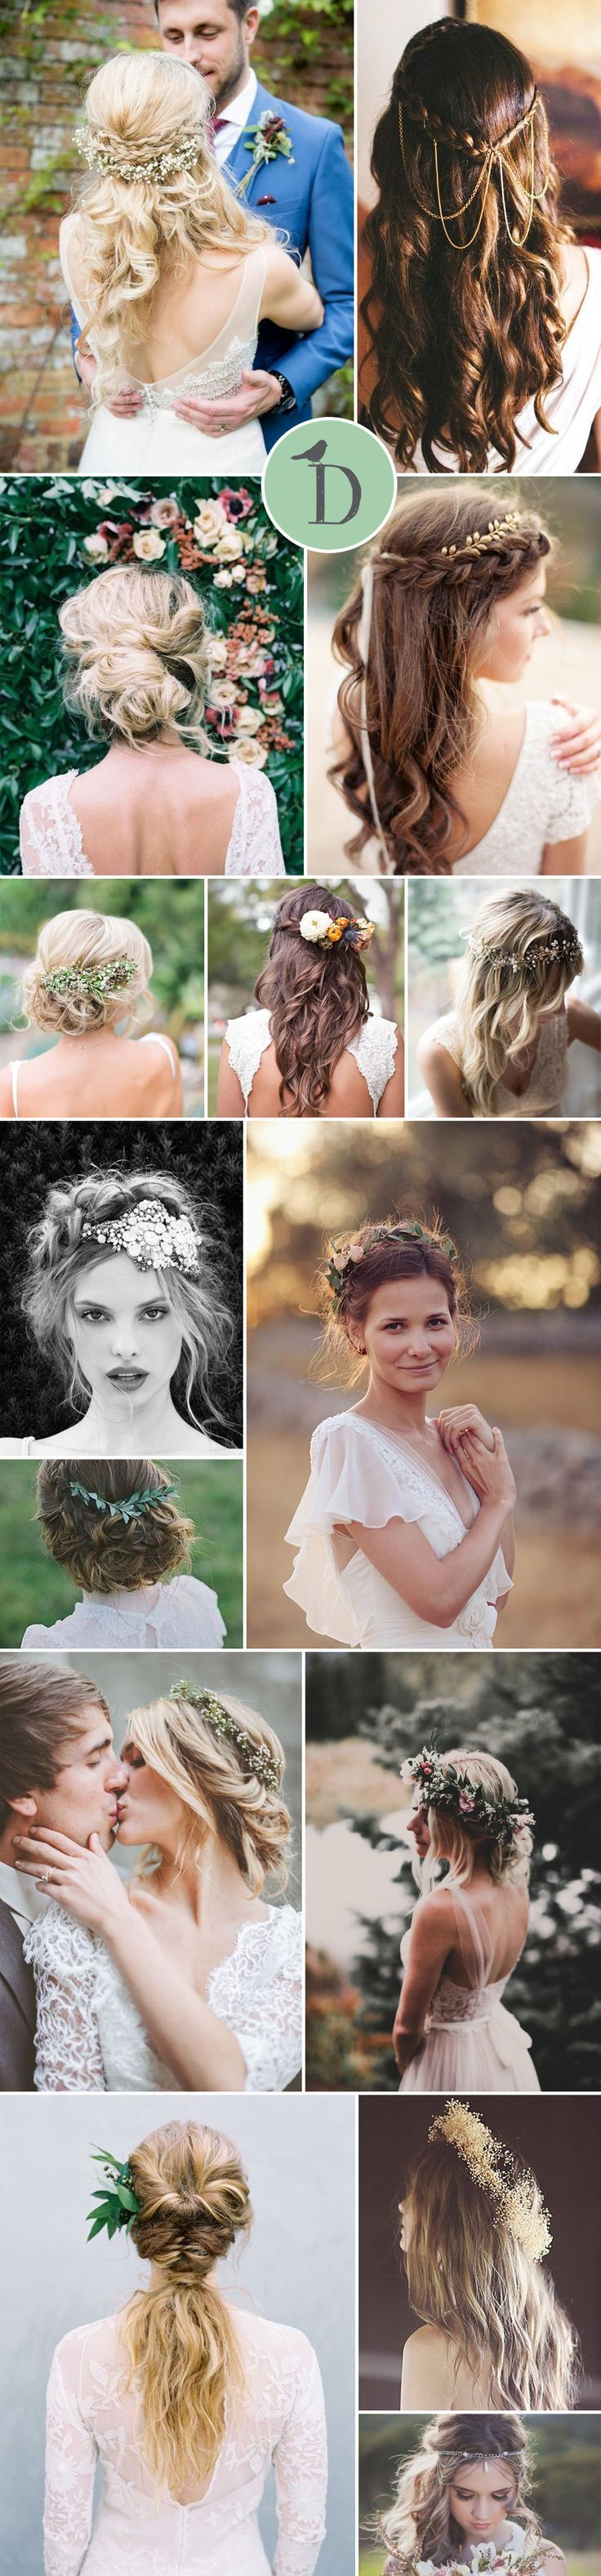 best Wedding Hairstyles images on Pinterest